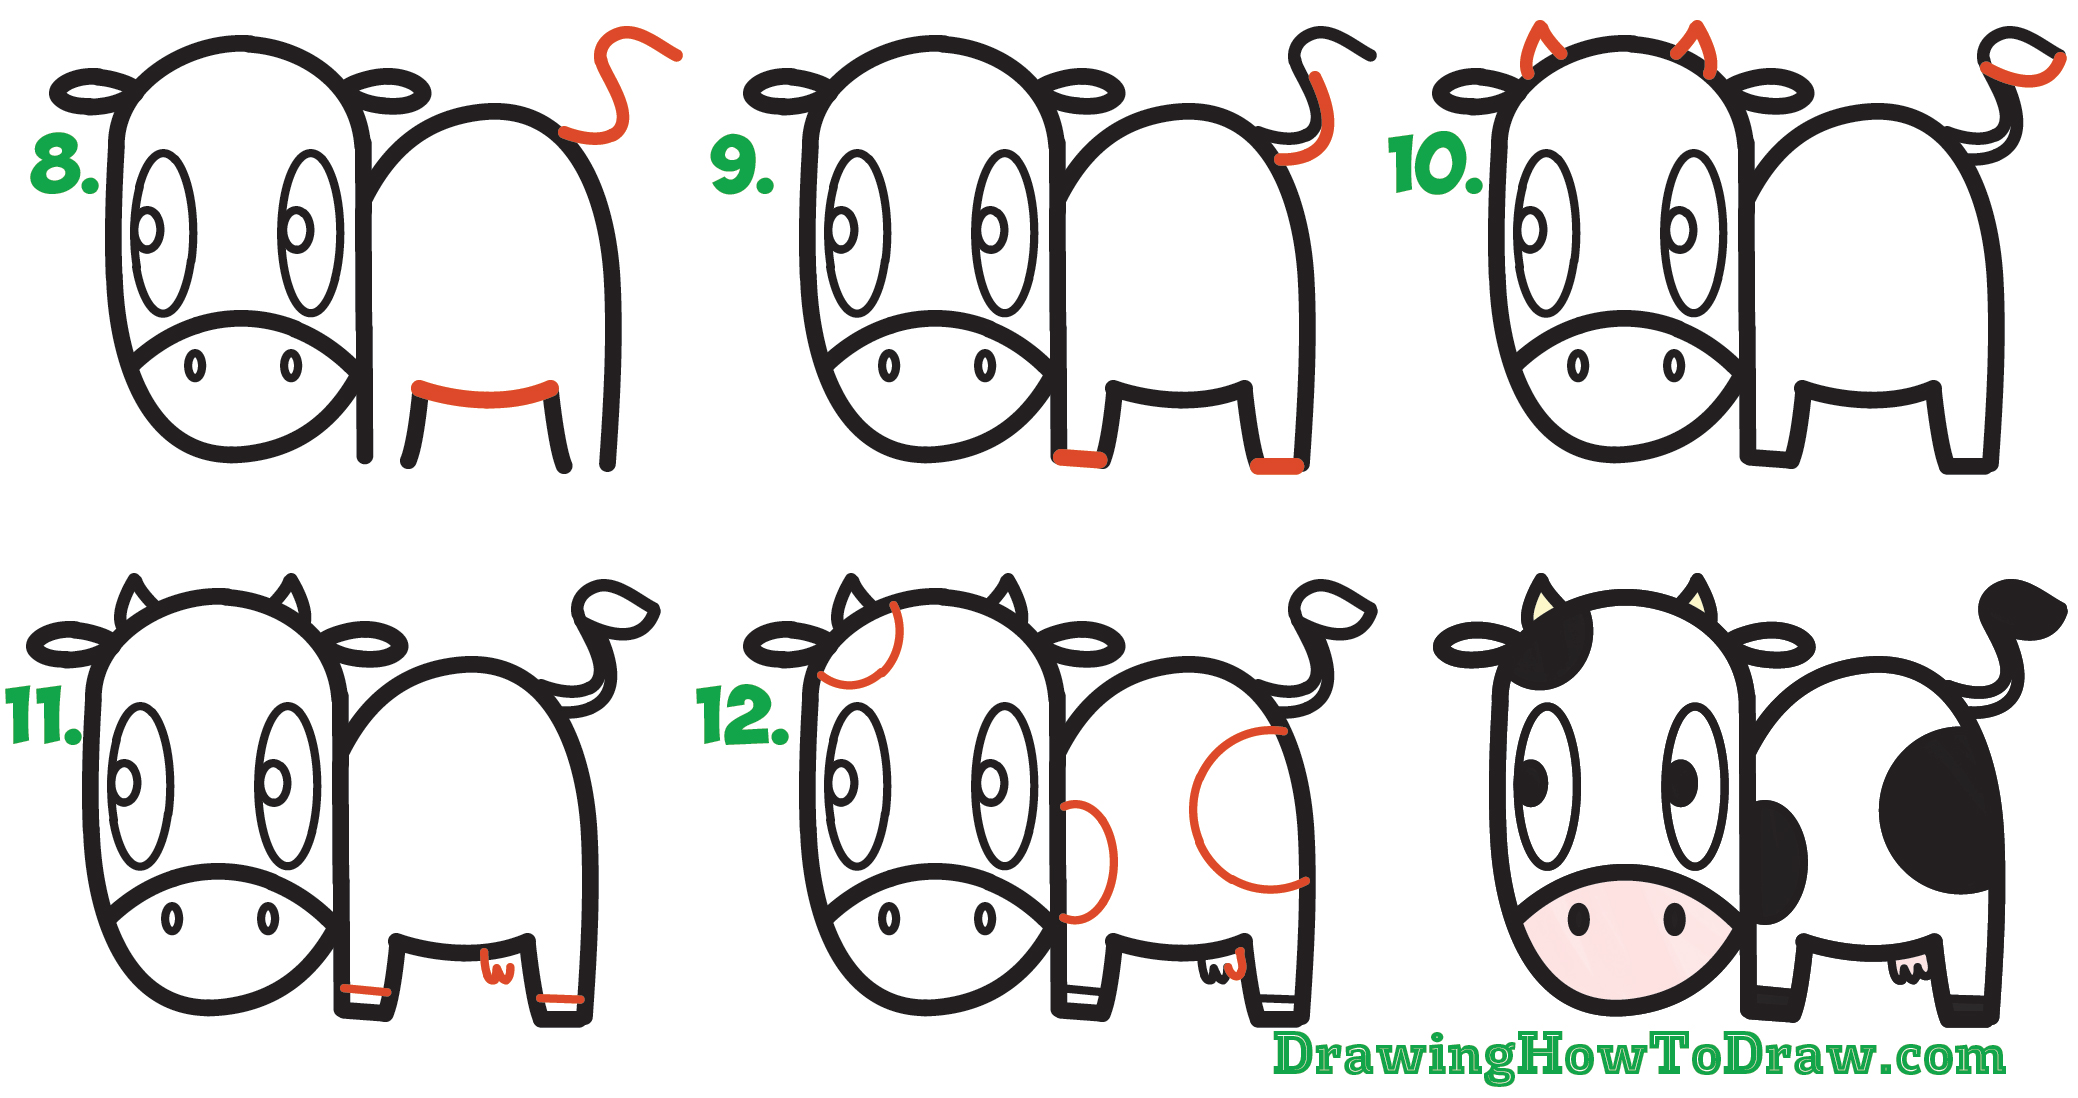 Step by how to draw cute cartoon animals cartoon for Learn to draw cartoons step by step lessons